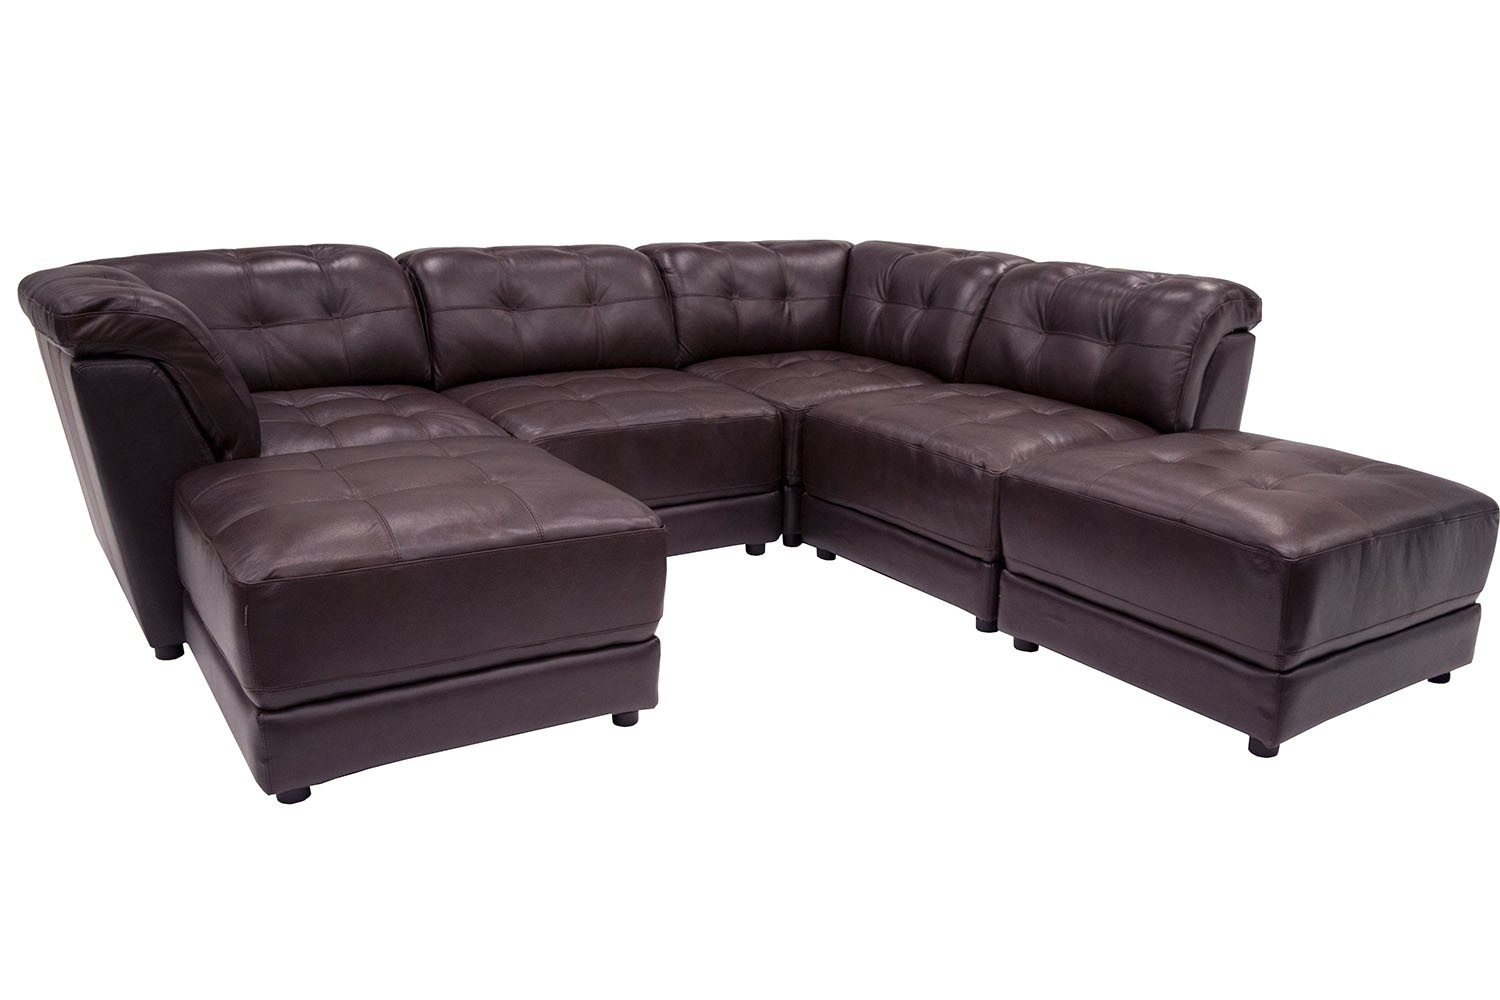 crypton fabric sofa uk city evansville in 6 piece modular sectional roxanne